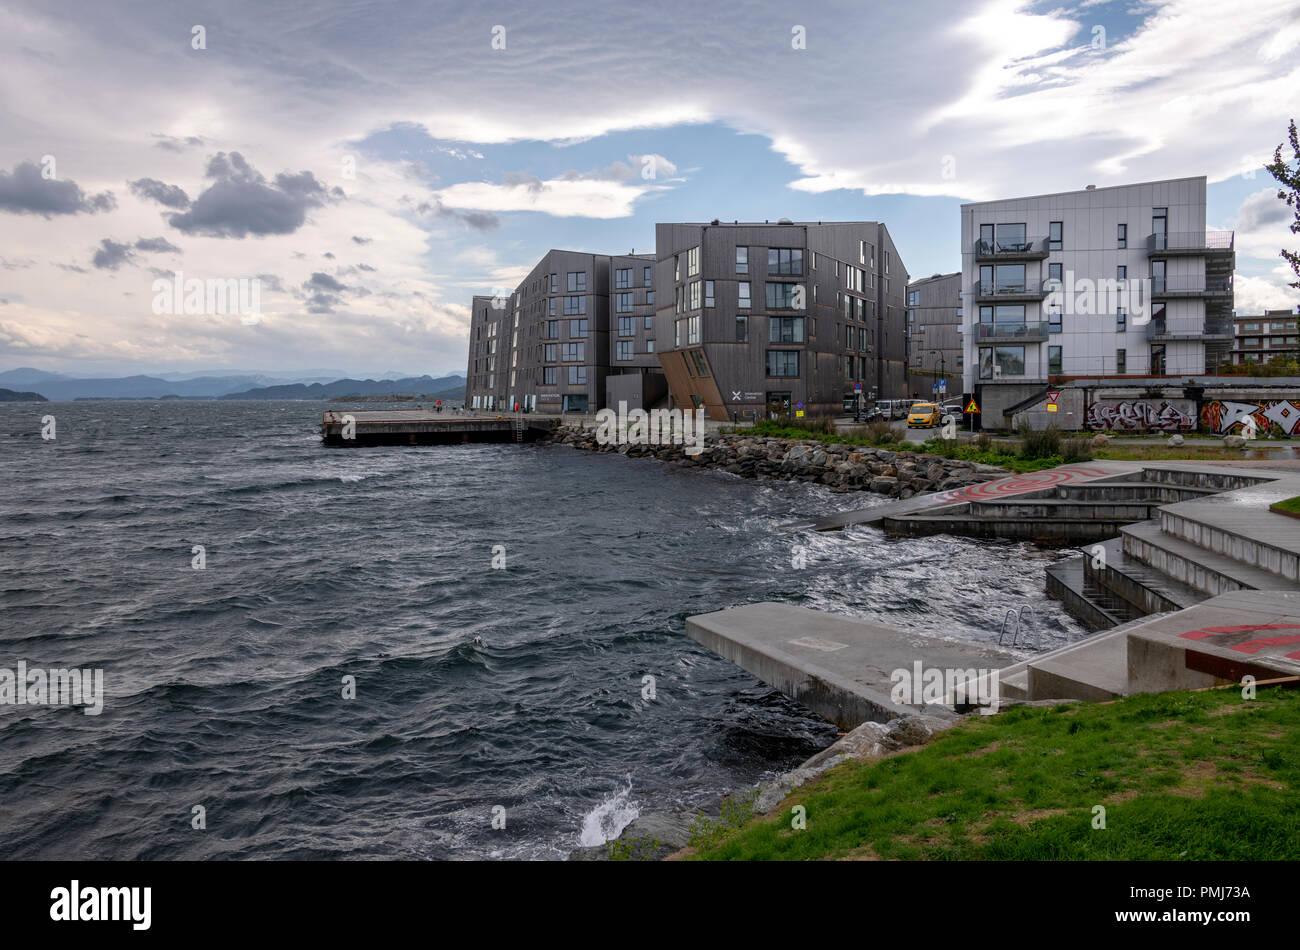 Innovation Dock on the very exposed edge of Stavanger. Close to the art centre Tou Scene. Used to host events, conferences, workshops and offices. - Stock Image